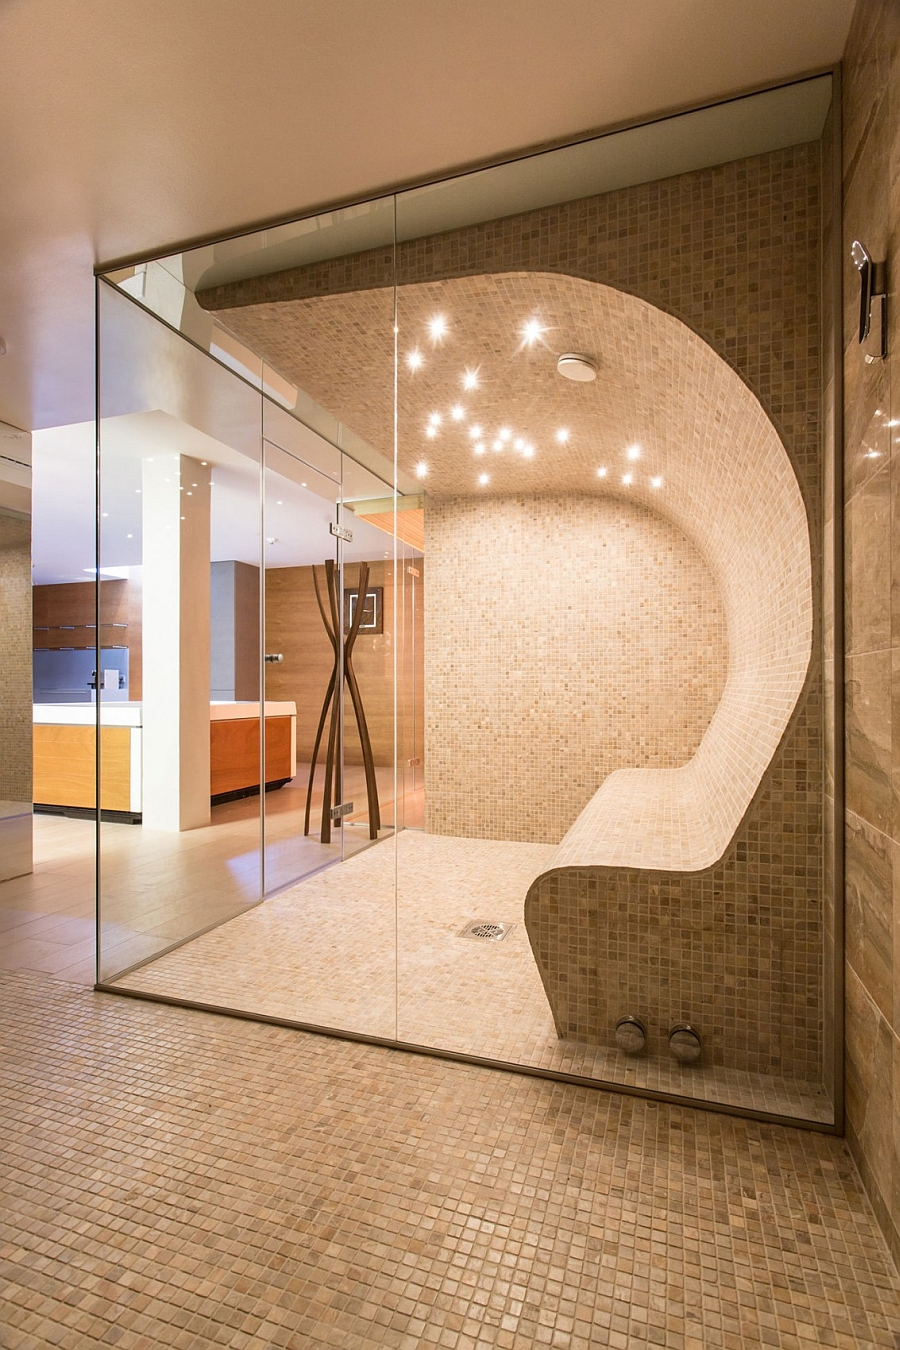 Image Result For How To Build A Steam Room In Your House